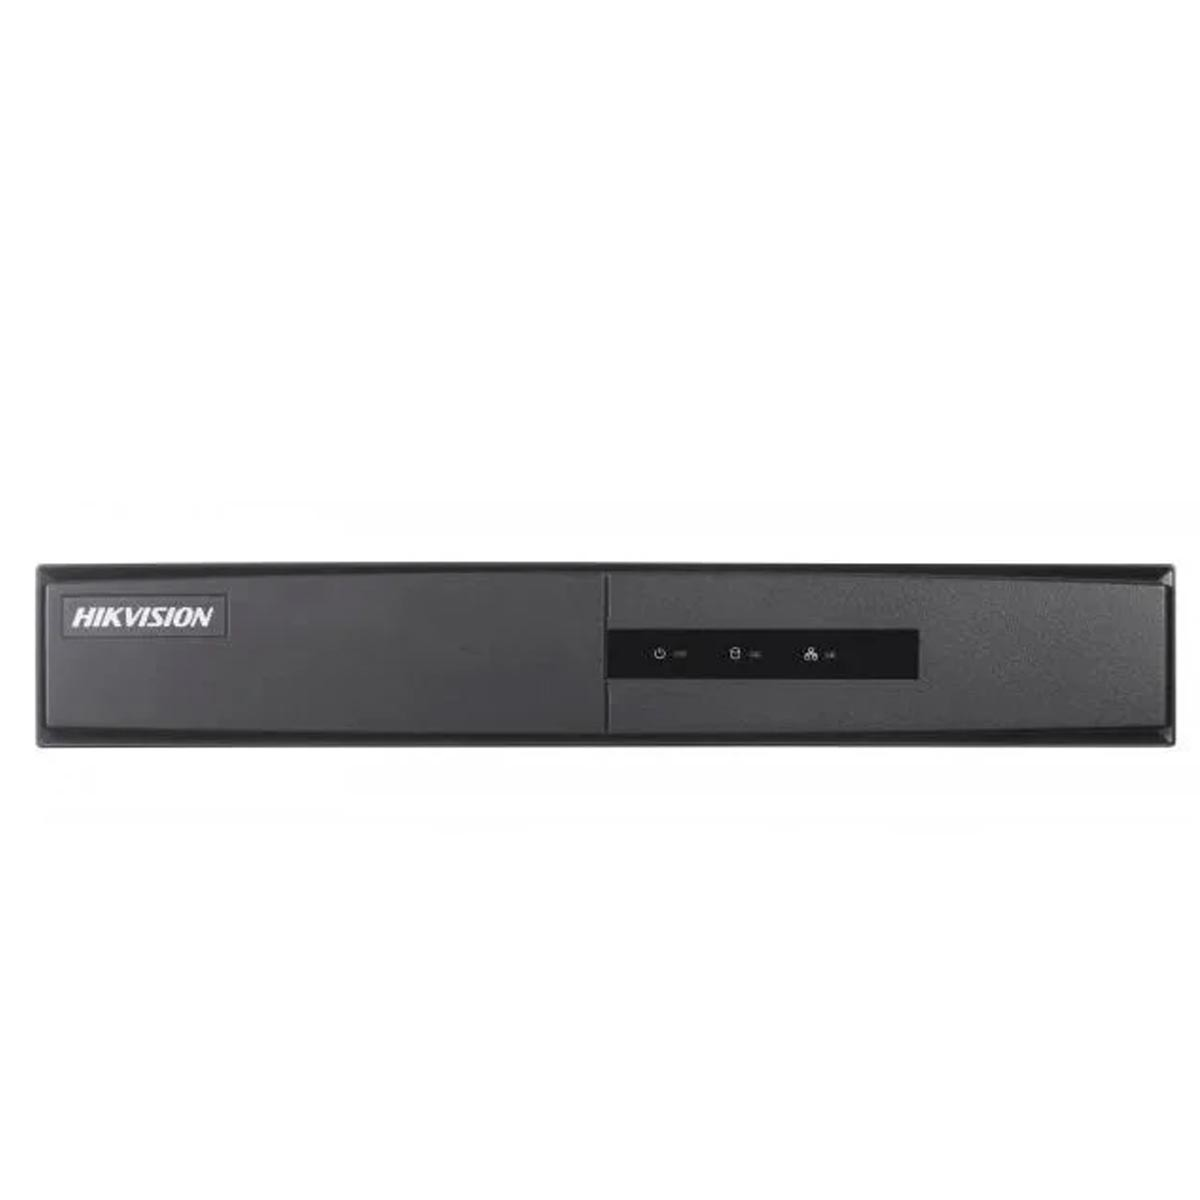 NVR STAND ALONE IP HIKVISION 8 CANAIS DS-7108NI-Q1/8P/M